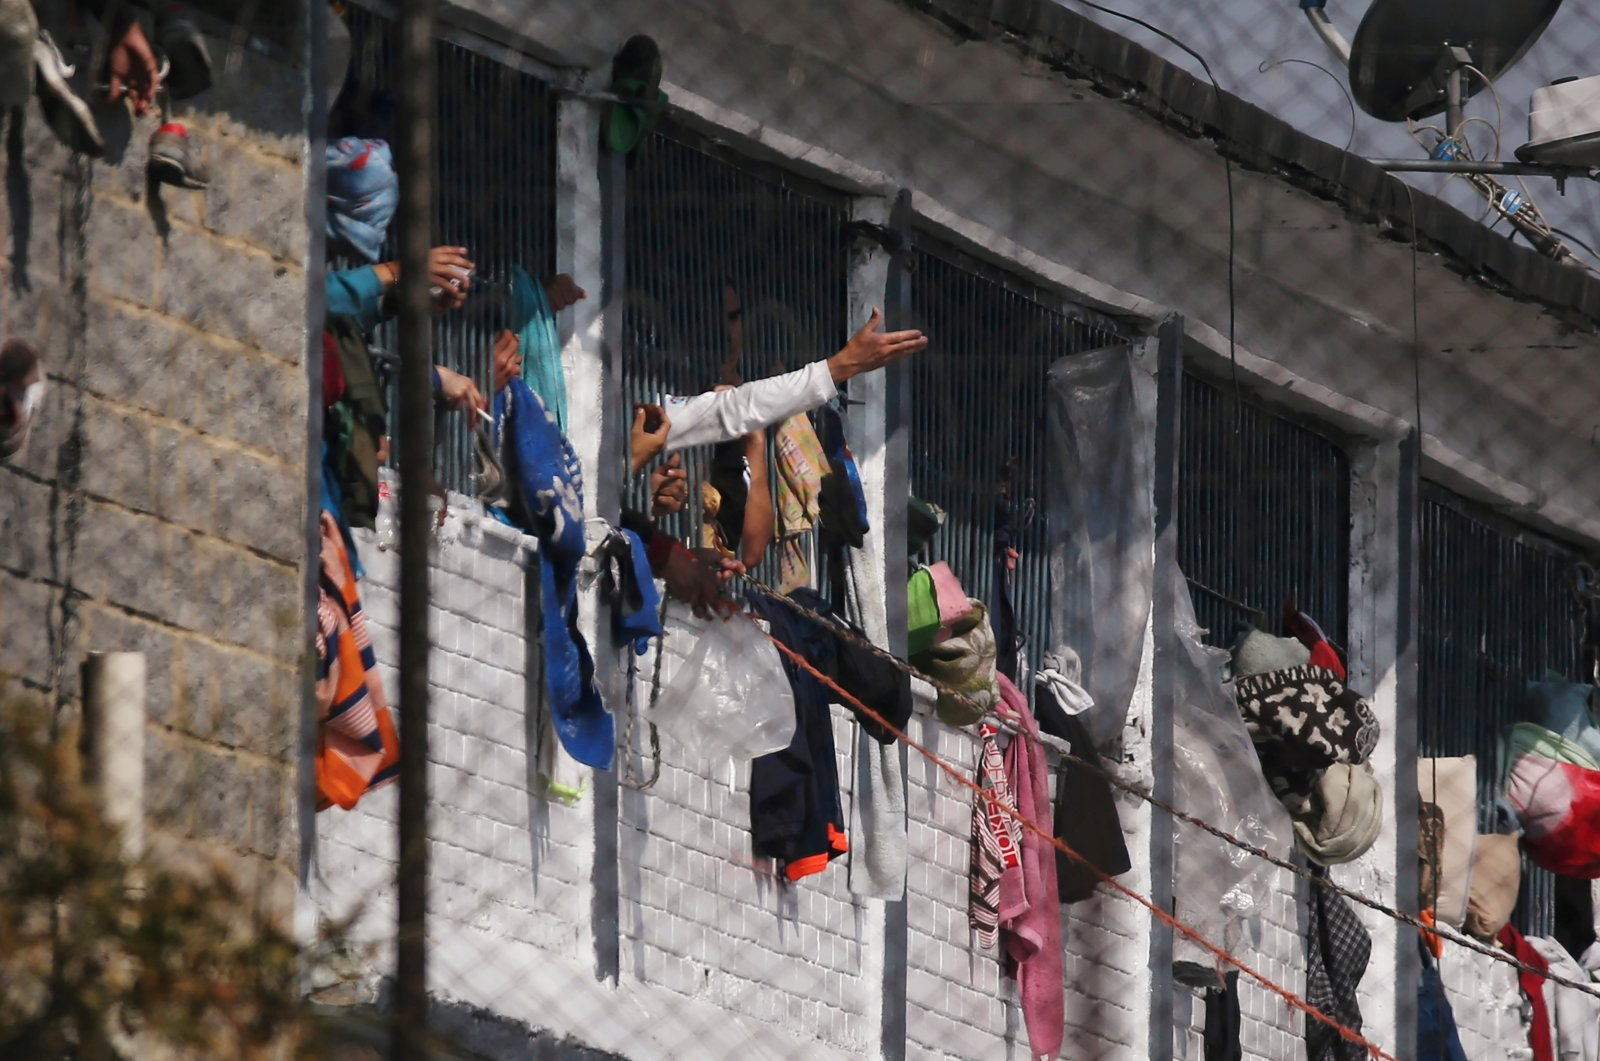 Prisoners are seen in cell windows inside the La Modelo prison after a riot by prisoners demanding government health measures against the spread of the coronavirus in Bogota, Colombia March 22, 2020. (Reuters Photo)